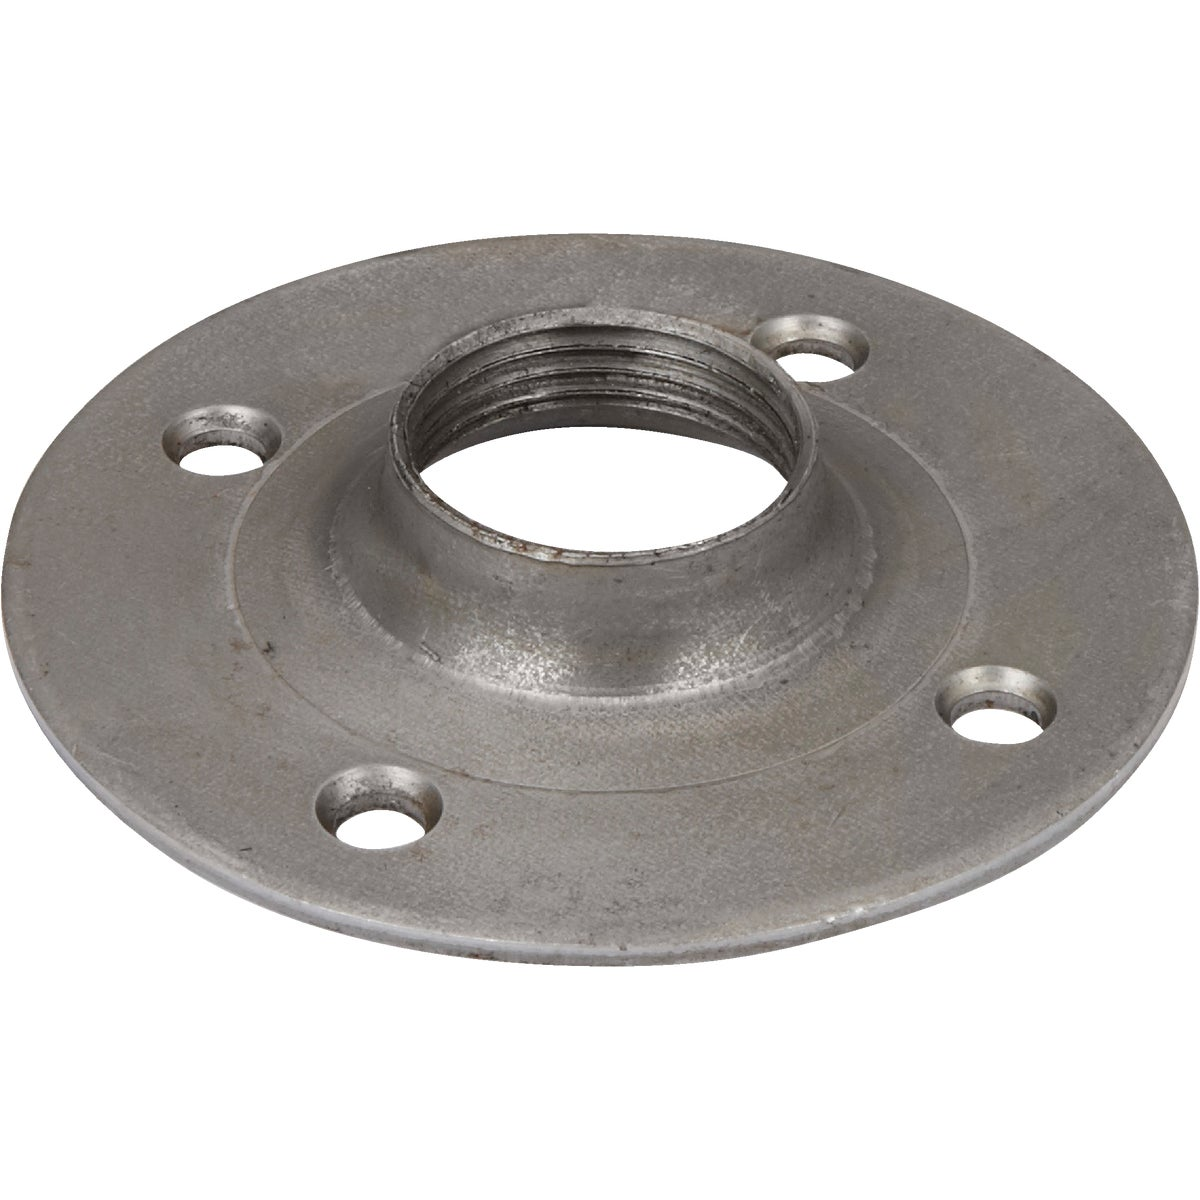 "1-1/4""STEEL FLOOR FLANGE -  by Western Reserve Mfg"